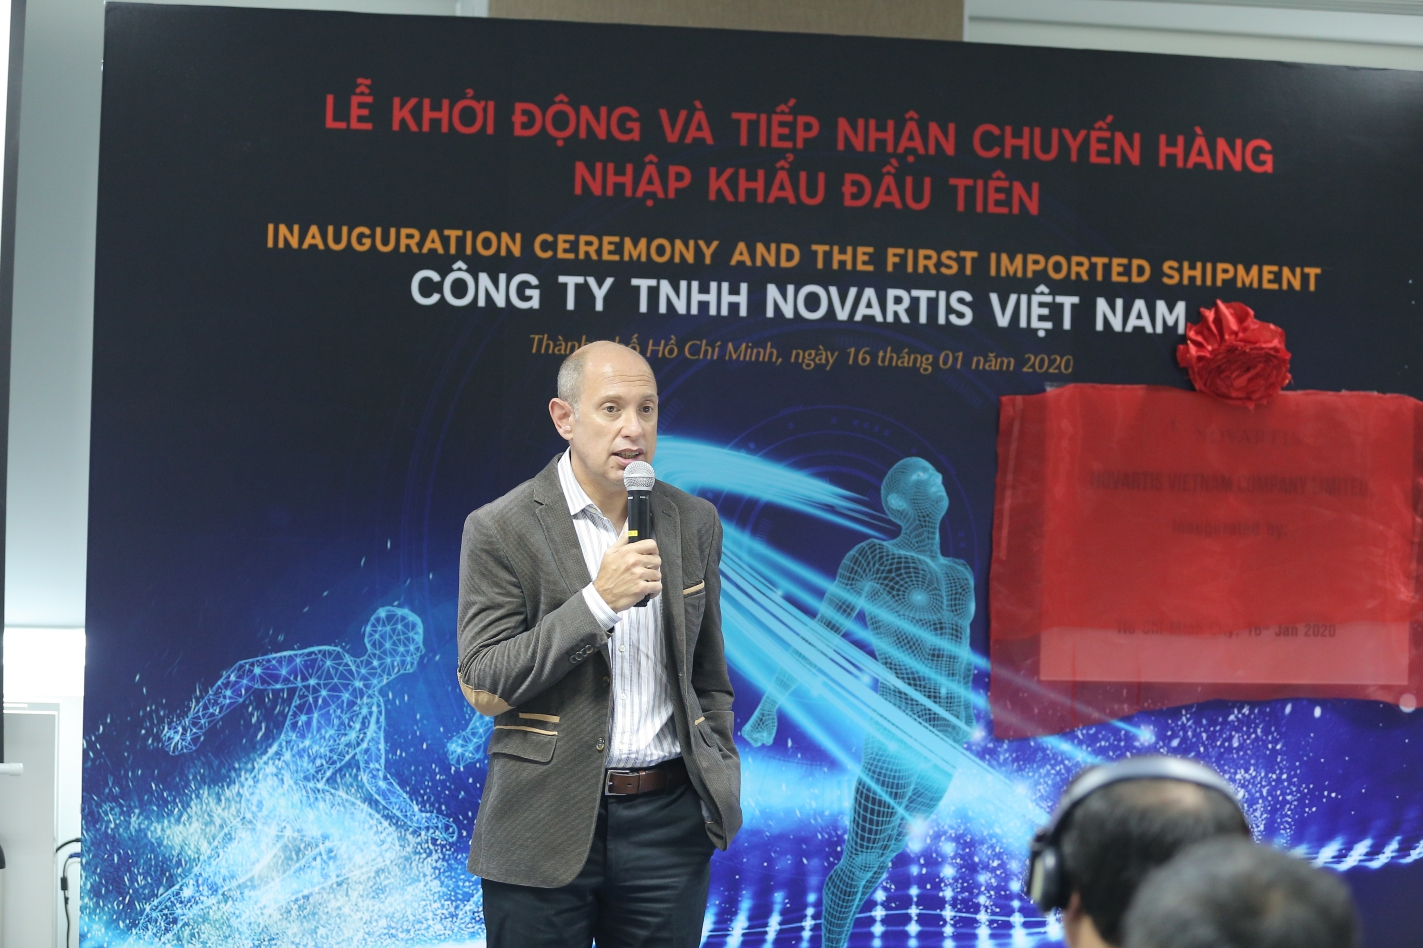 Alexis Serlin, head of the Asia Cluster at Novartis, speaks at the inauguration ceremony in Ho Chi Minh City on January 16, 2020.